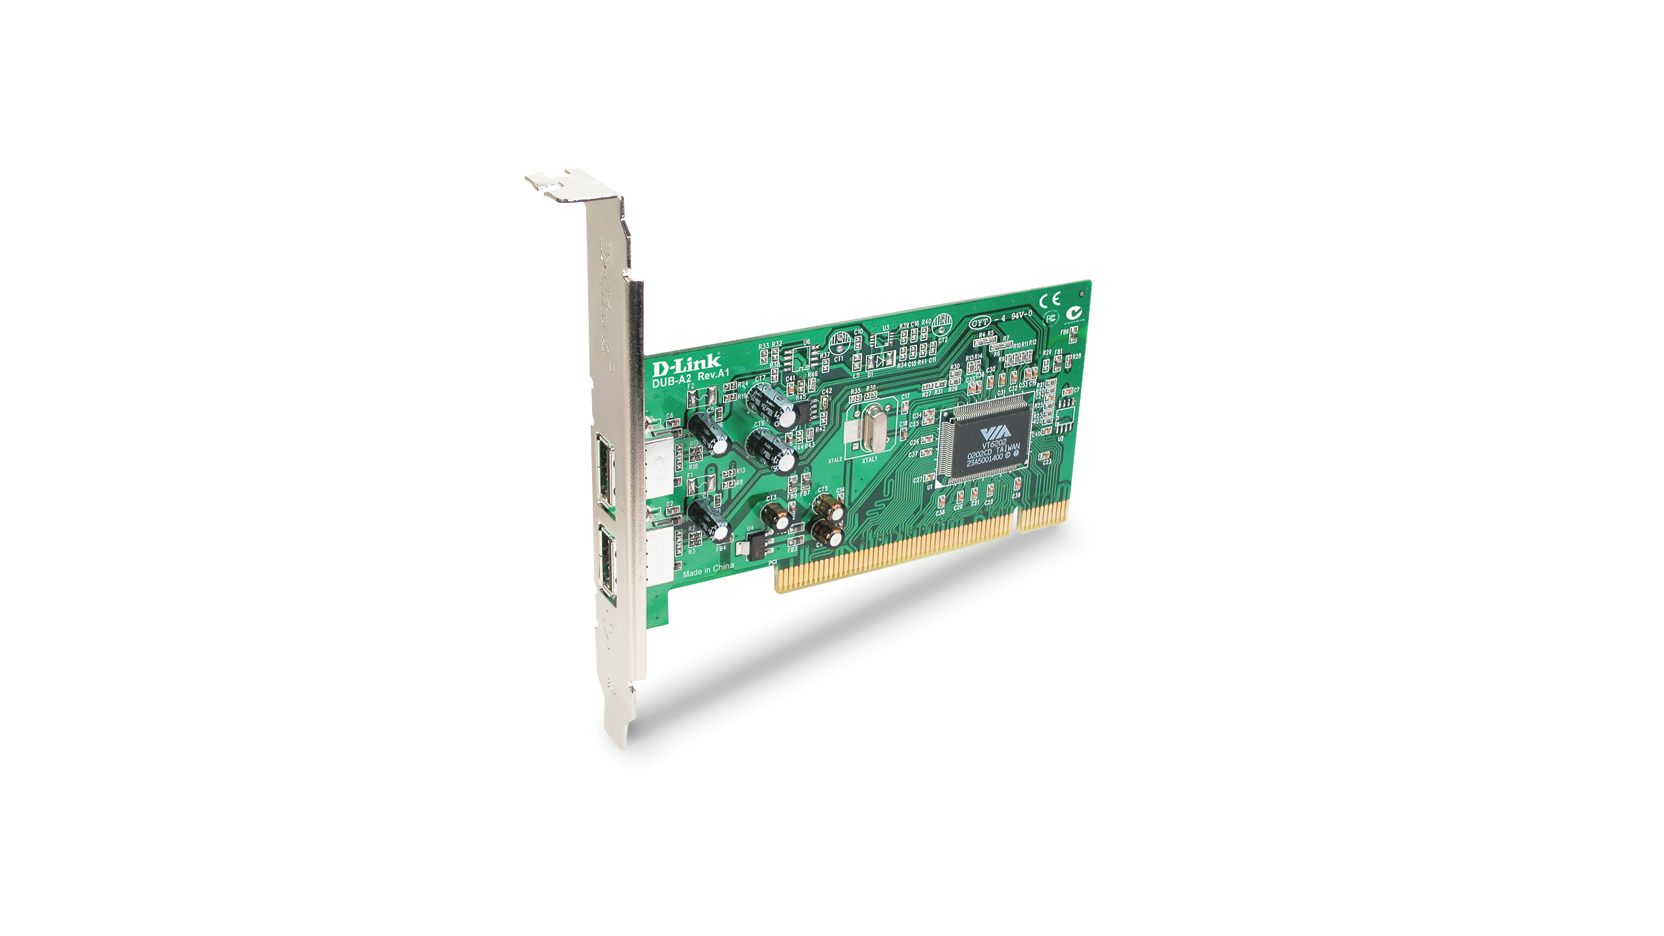 D LINK DFB A5 USB 2.0 PCI ADAPTER DRIVER FOR WINDOWS MAC